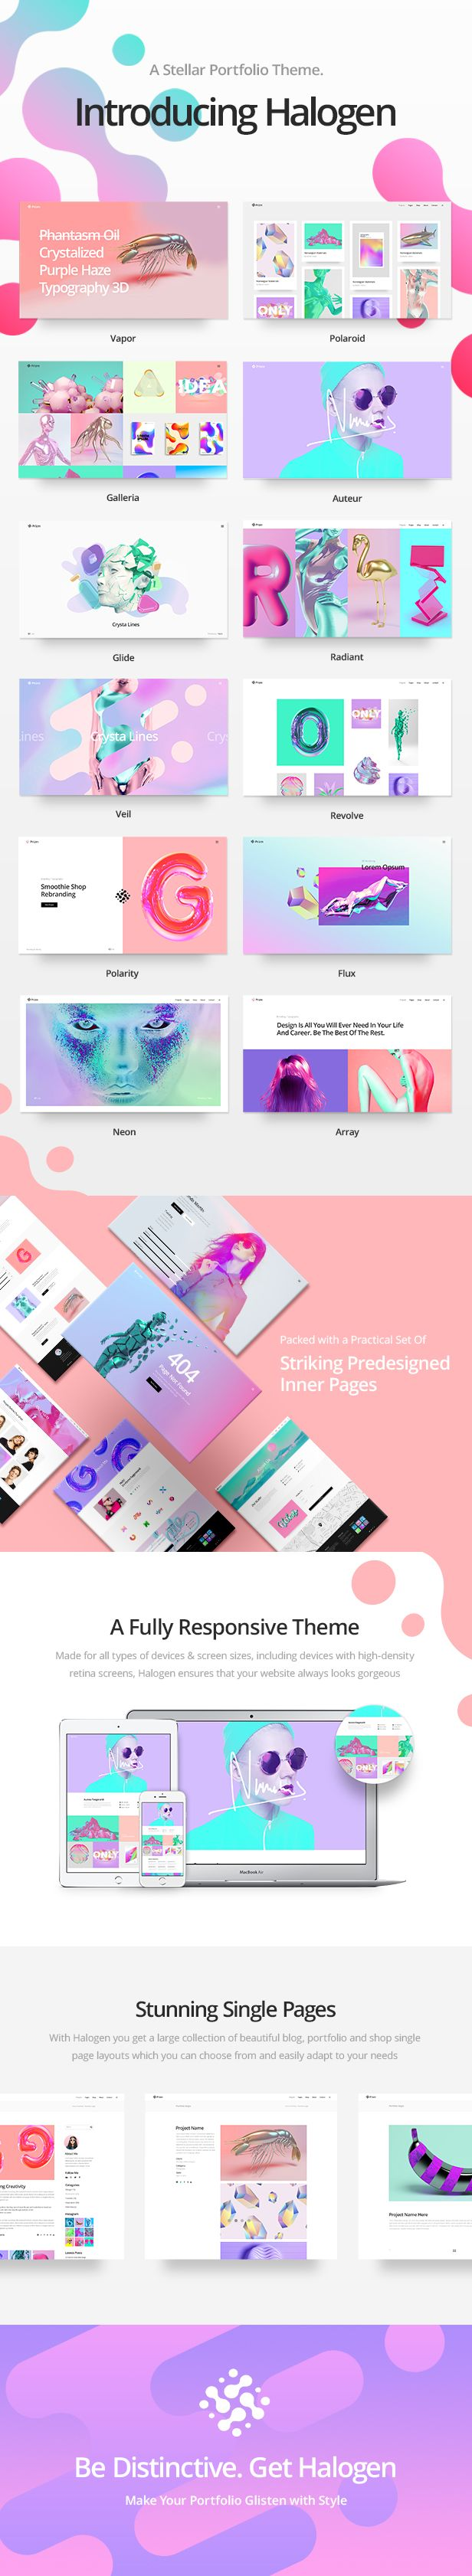 Halogen - A Stellar, Innovative Portfolio Theme #agency #artistic #colorful